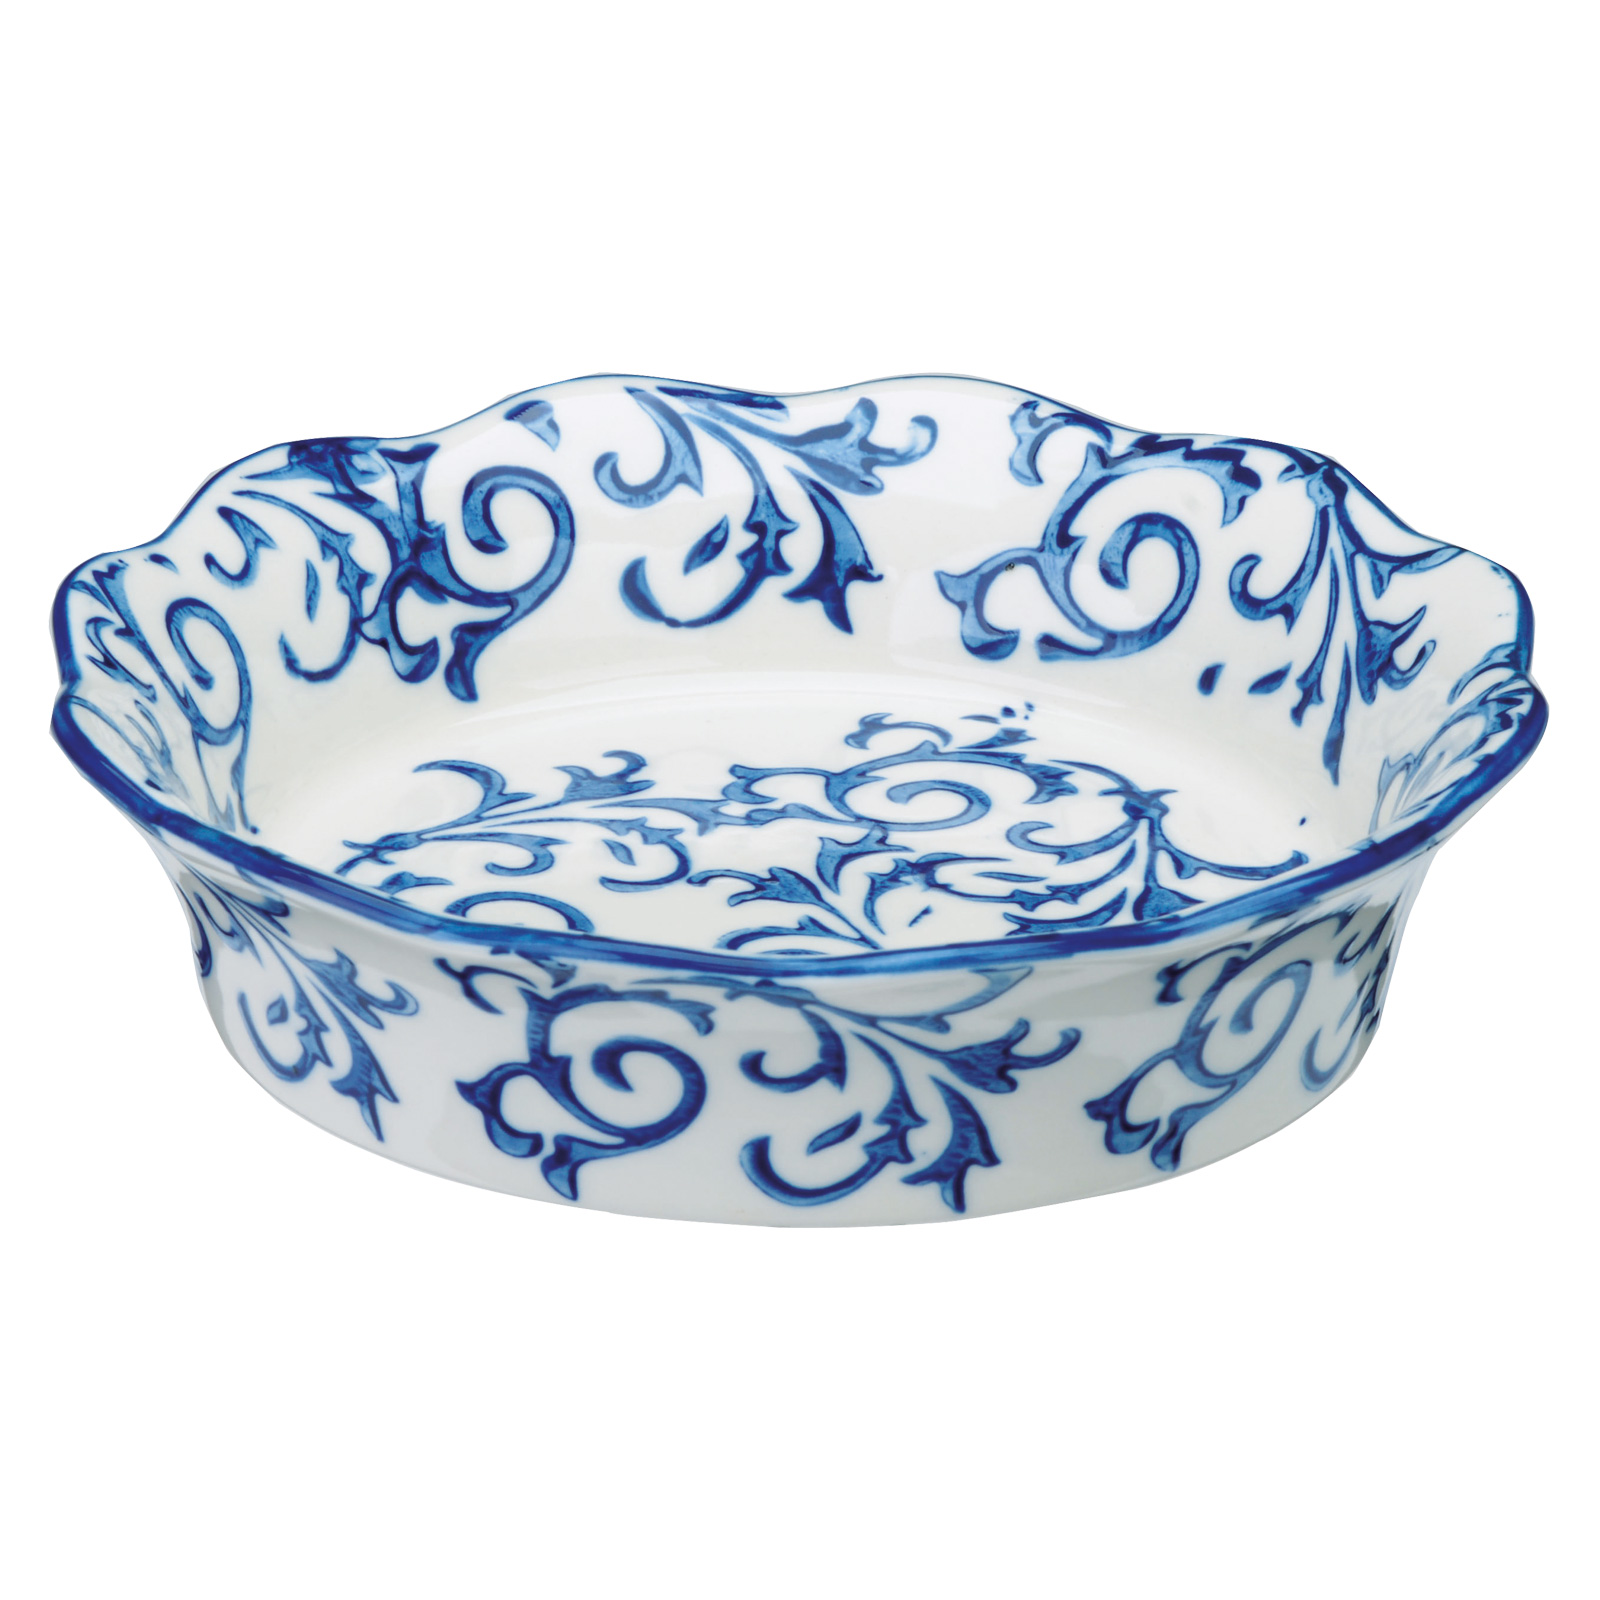 Set of 4 Heritage Individual Pie Dishes Blue by BIA